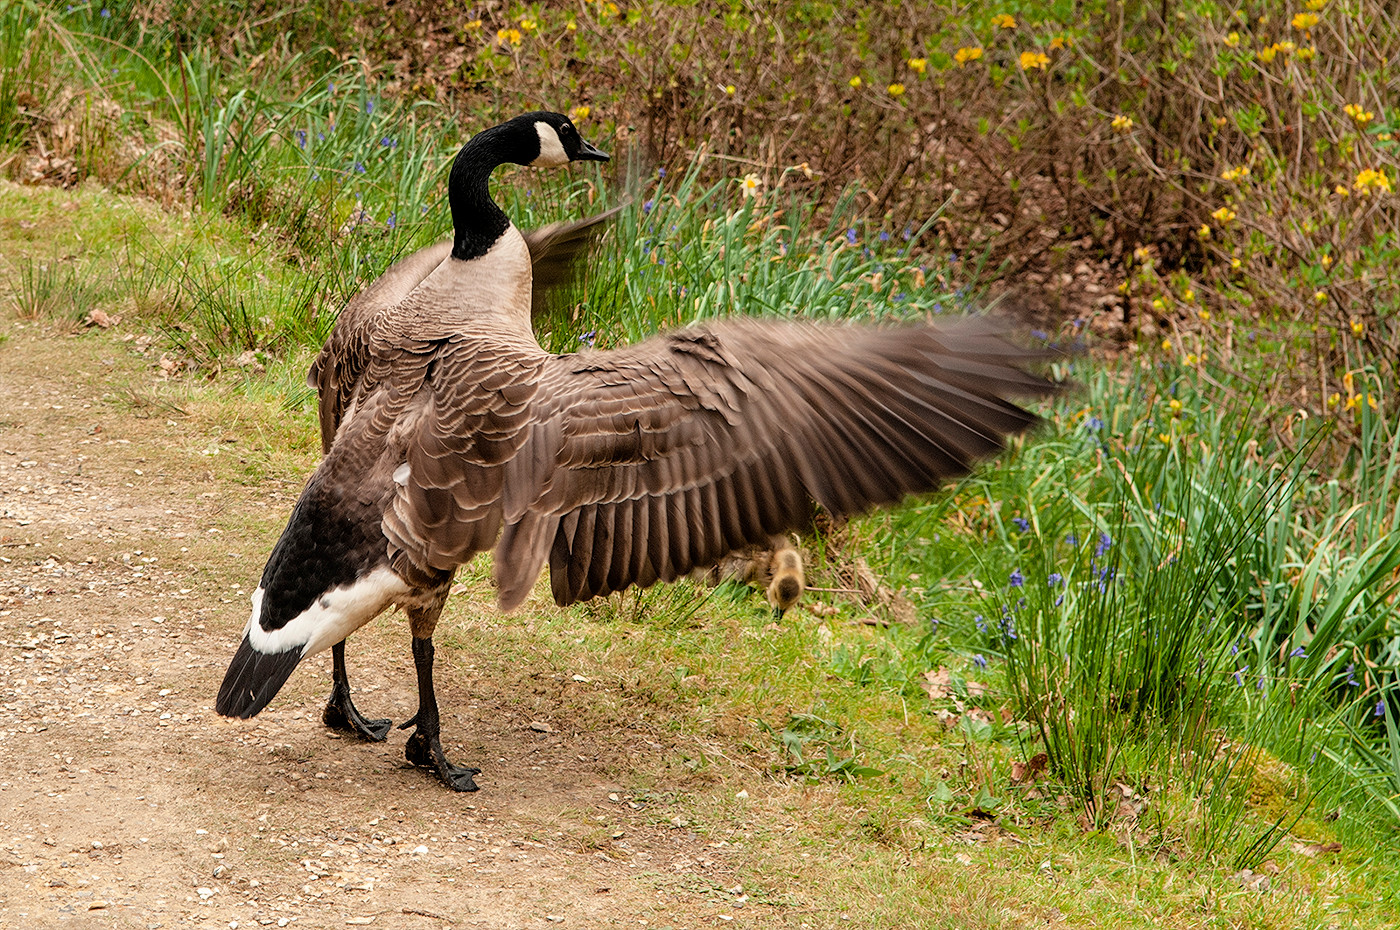 16 CANADA GOOSE SHIELDING HER GOSLING by Ann Paine